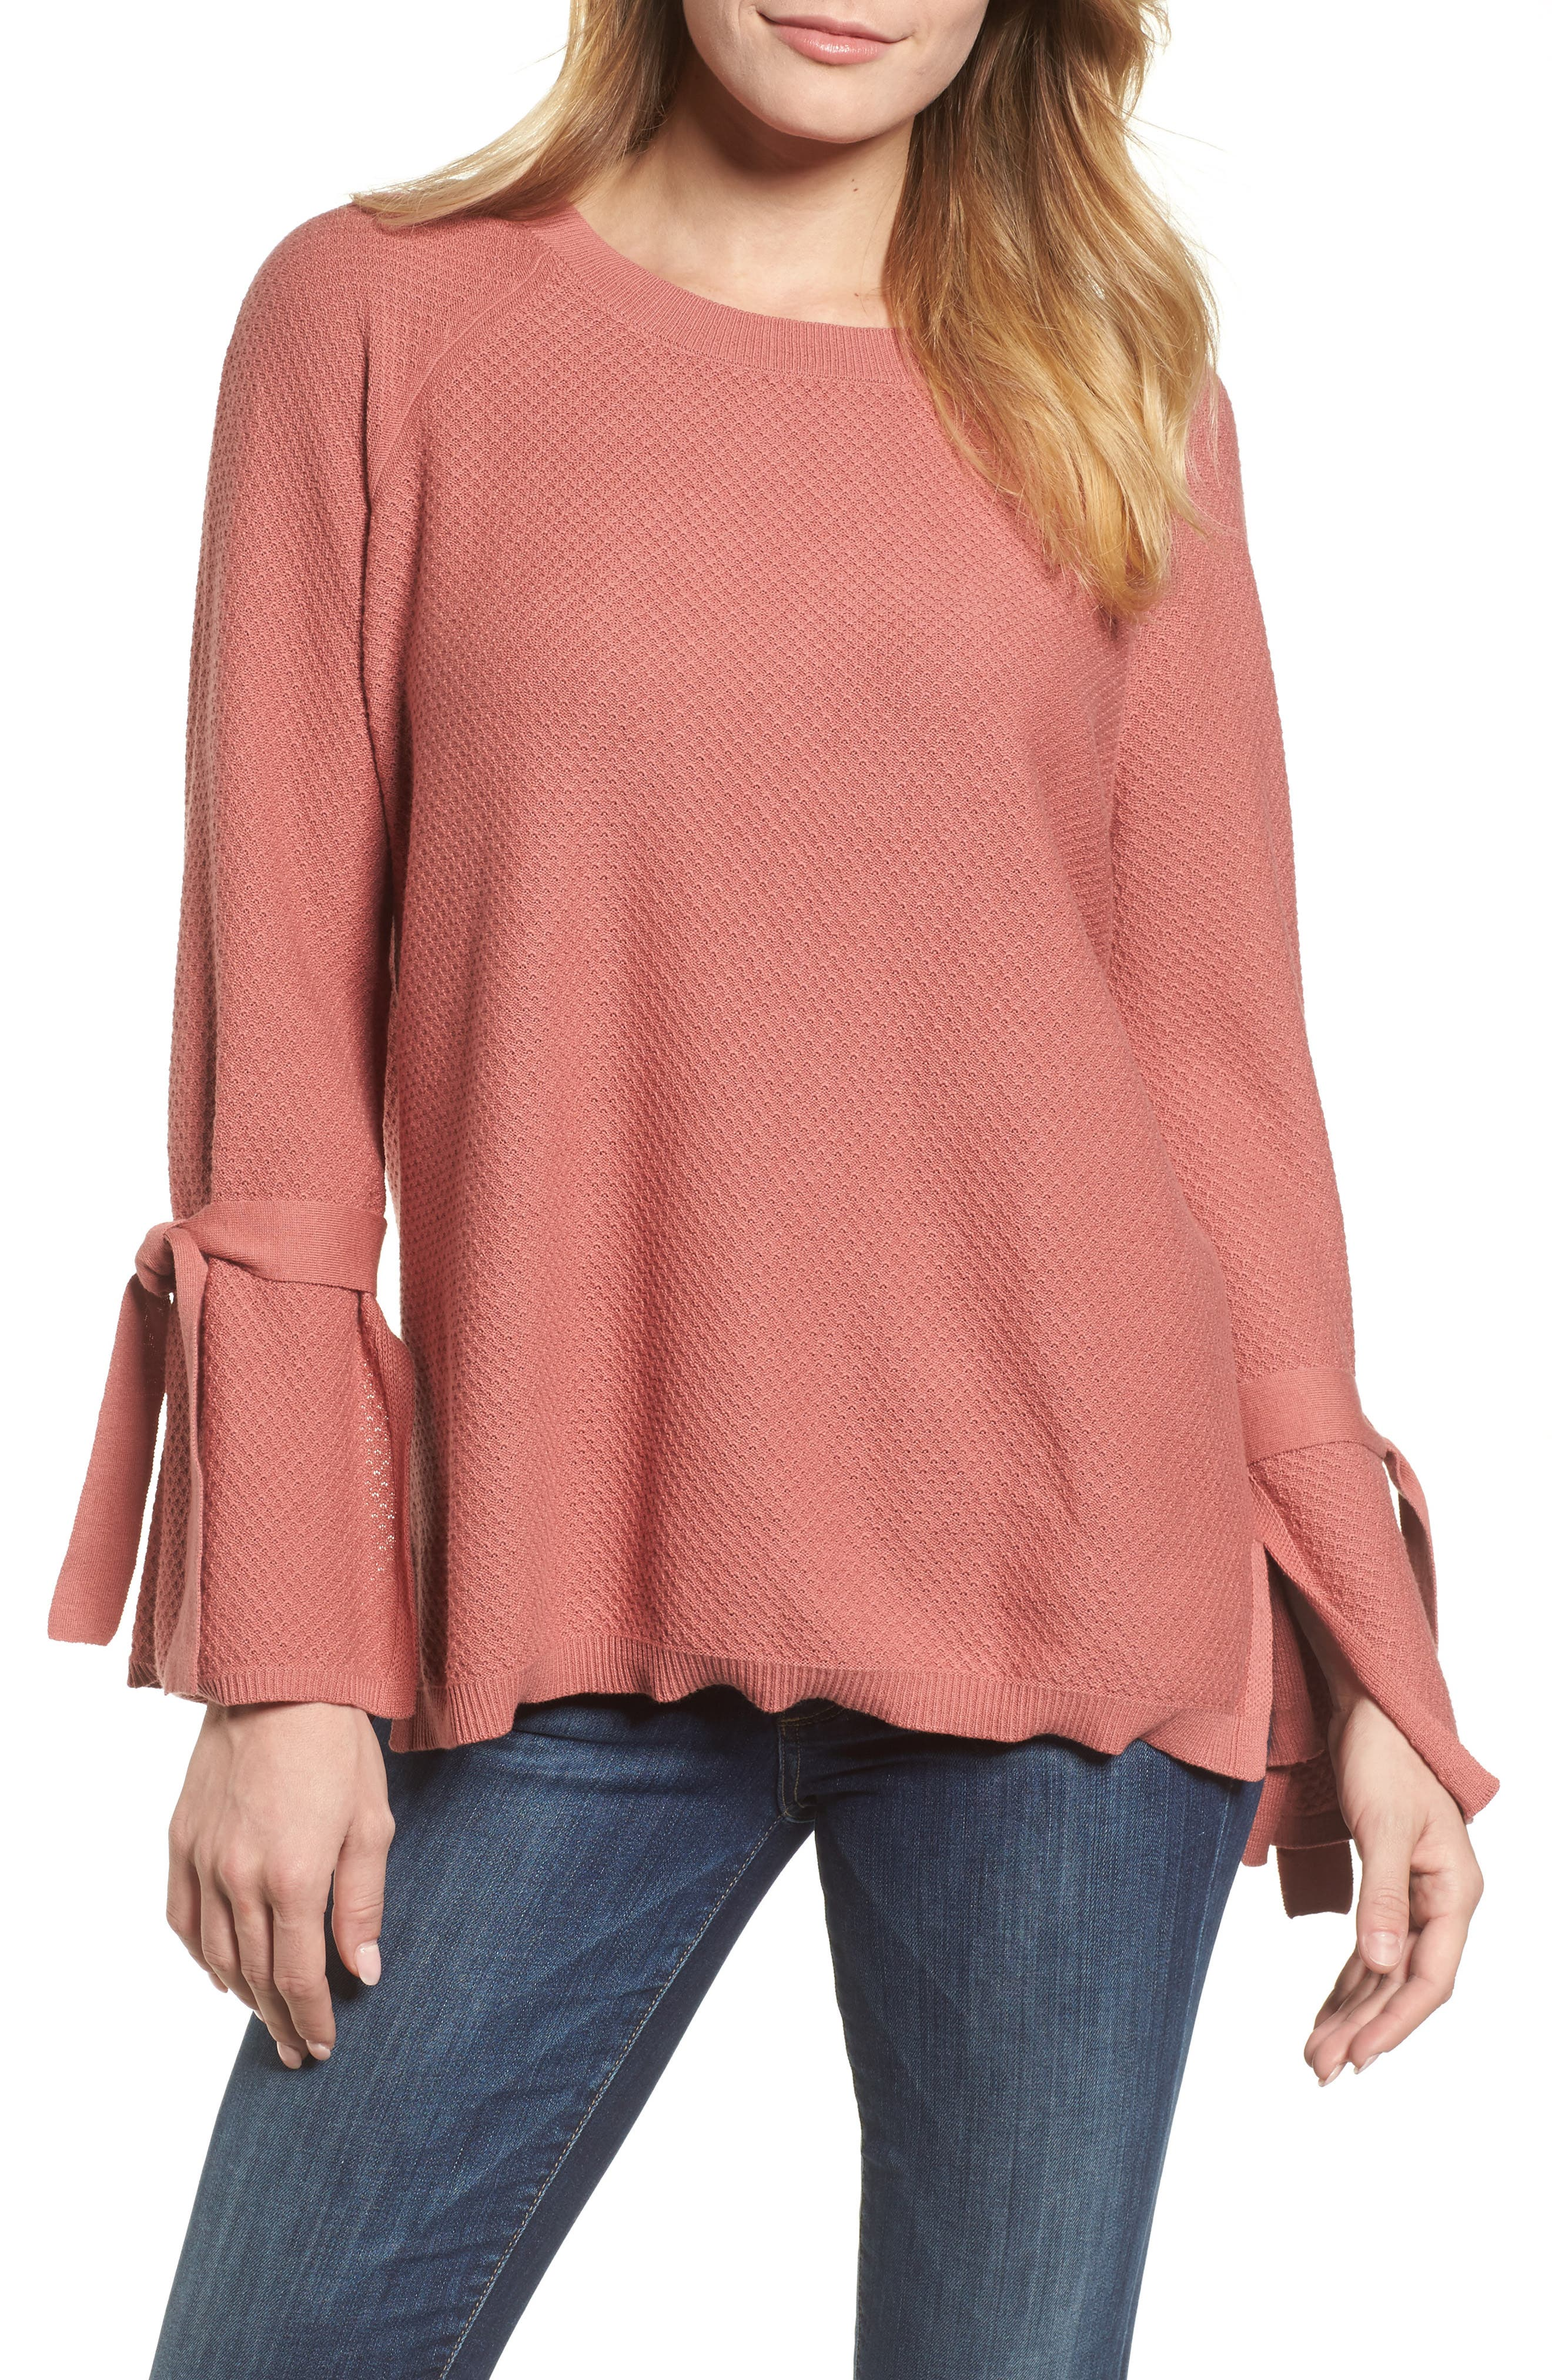 Two by Vince Camuto Texture Stitch Tie-Sleeve Top (Regular & Petite)